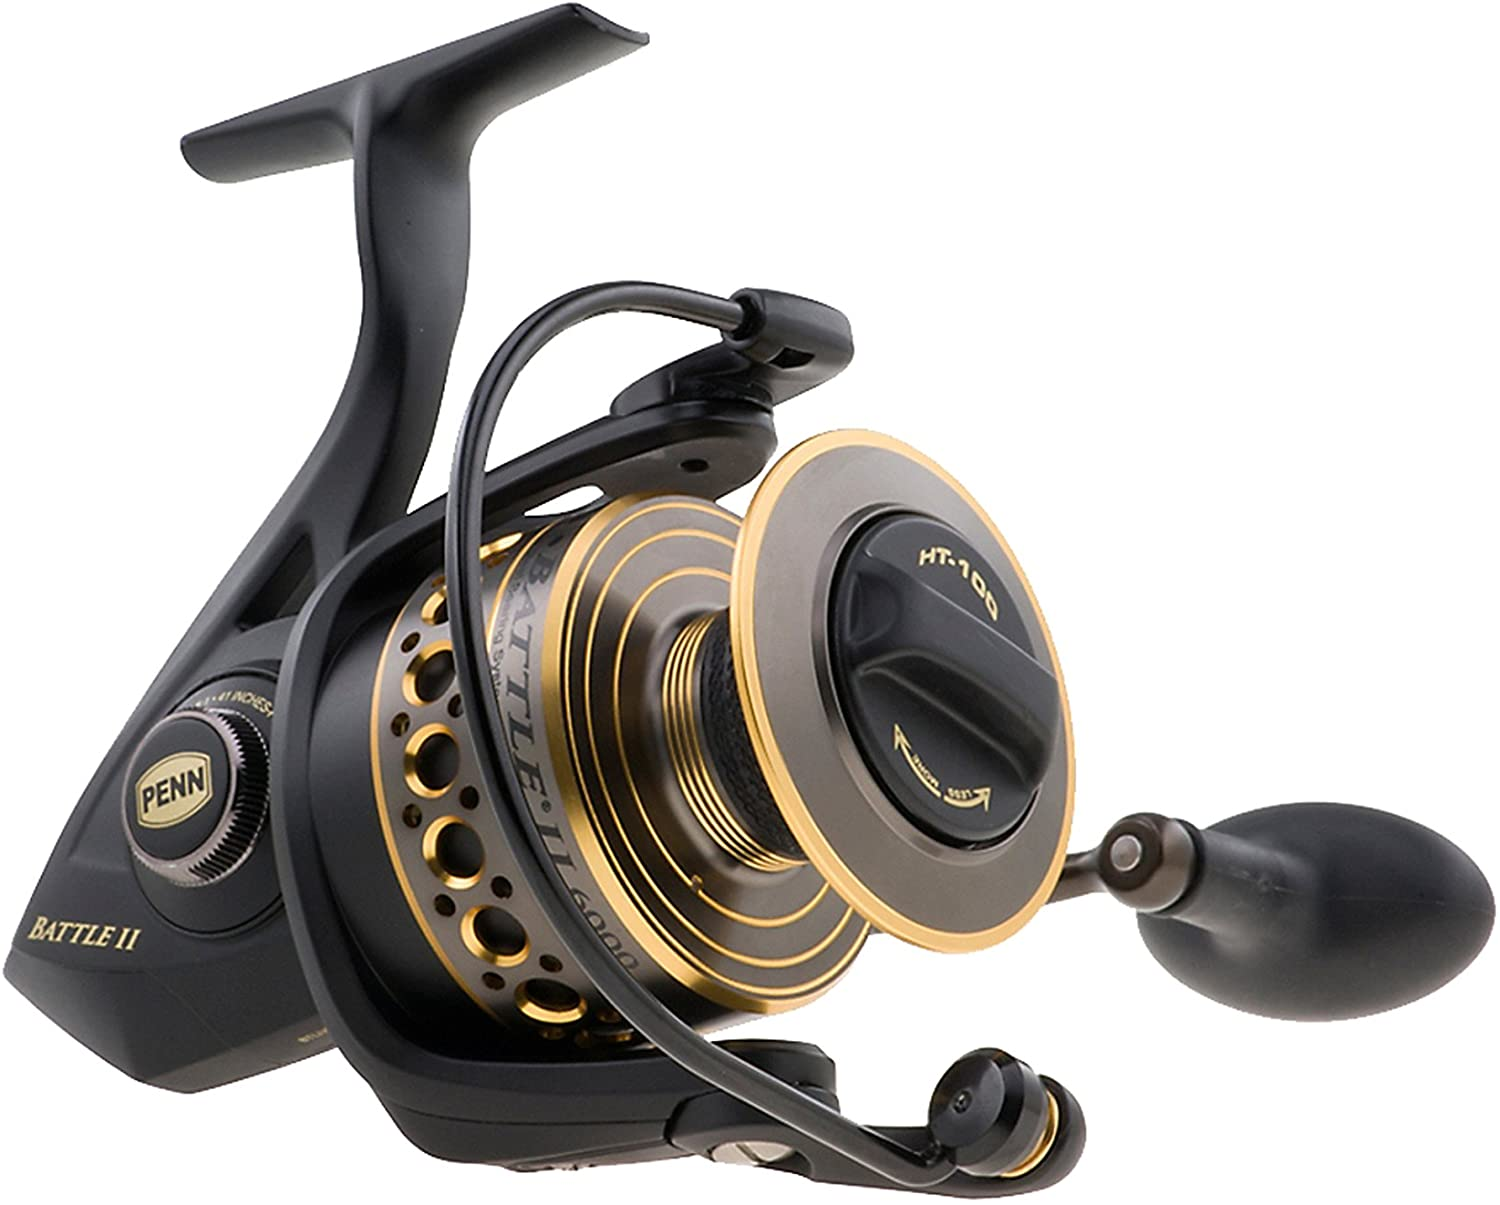 Best Spinning Reel: Penn Battle II Spinning Fishing Reel